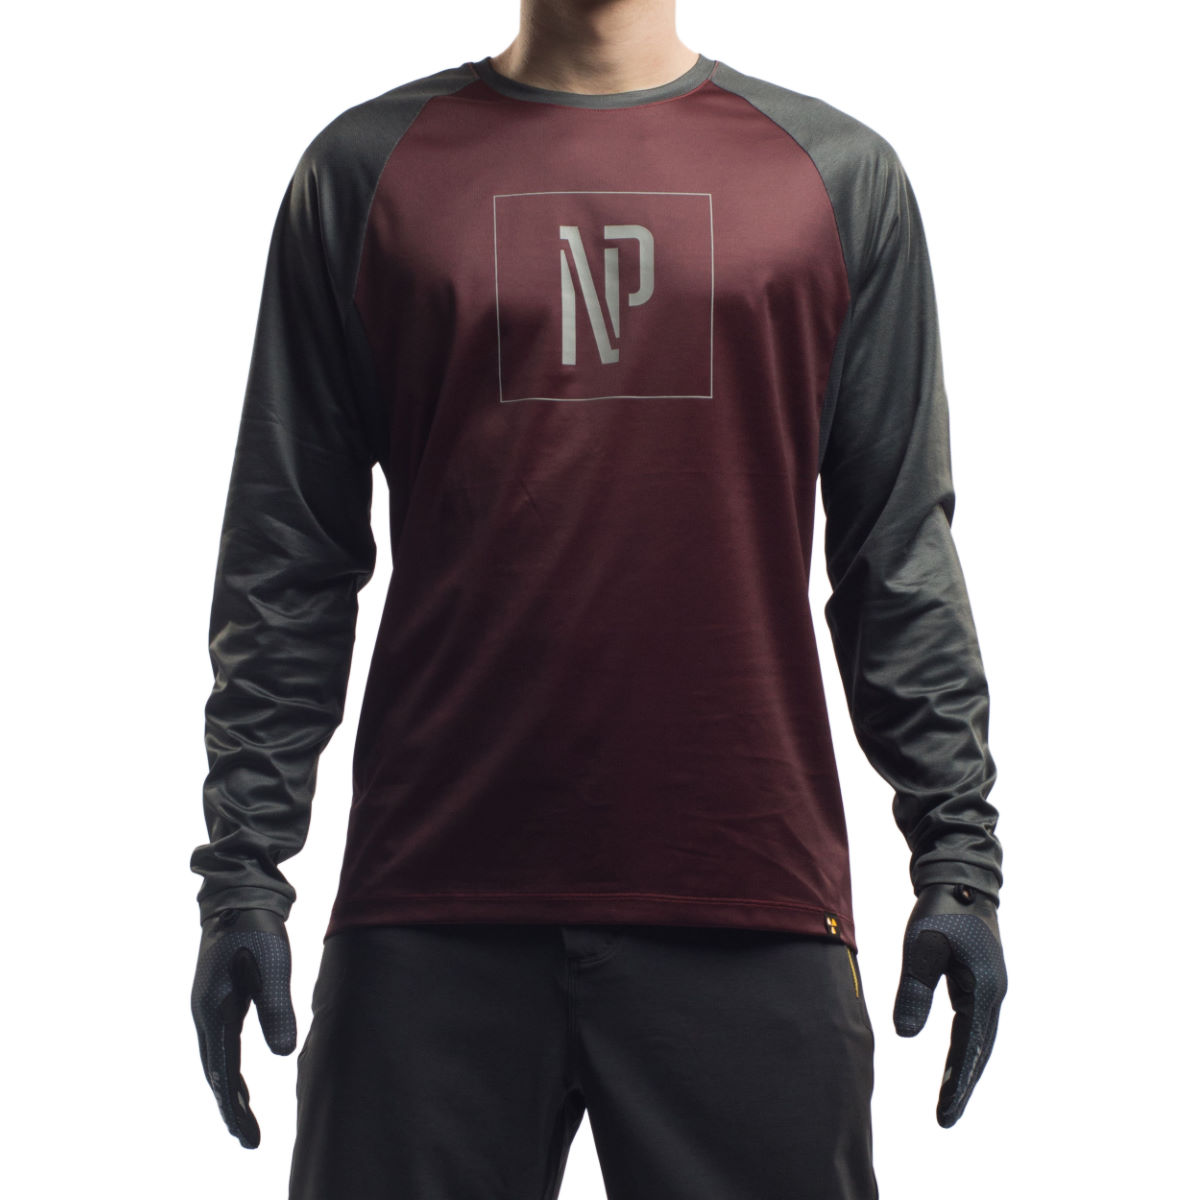 Maillot Nukeproof Outland NP (manches longues) - Medium Maroon/Grey